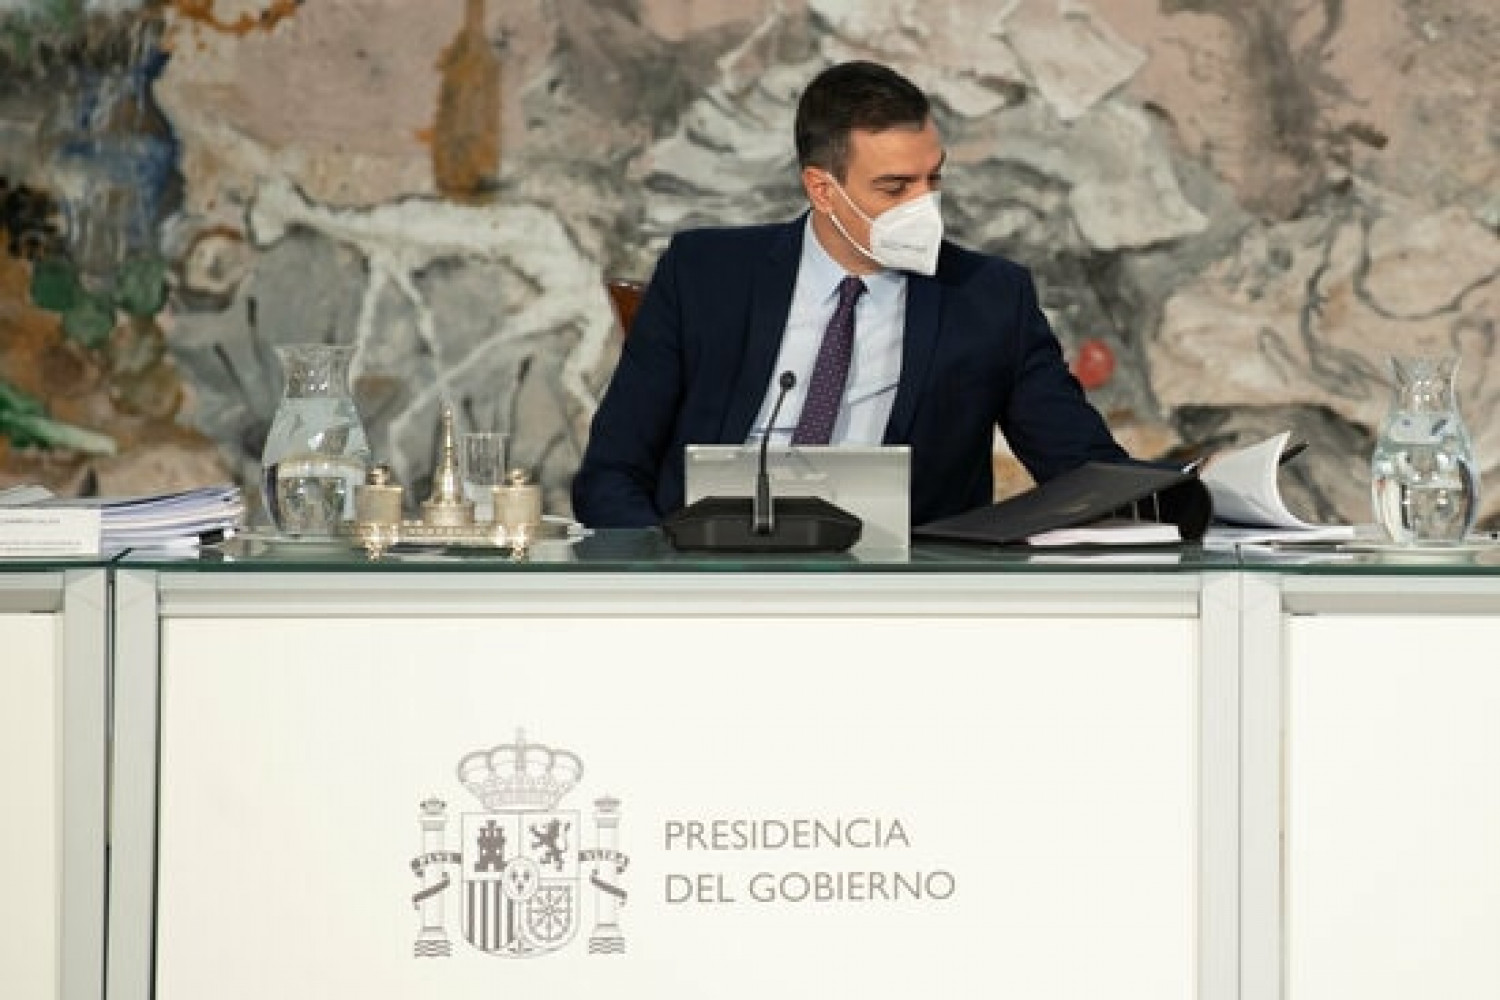 Spanish president Pedro Sánchez during the cabinet meeting on April 13, 2021 (by Borja Puig de la Bellacasa/Pool Moncloa)